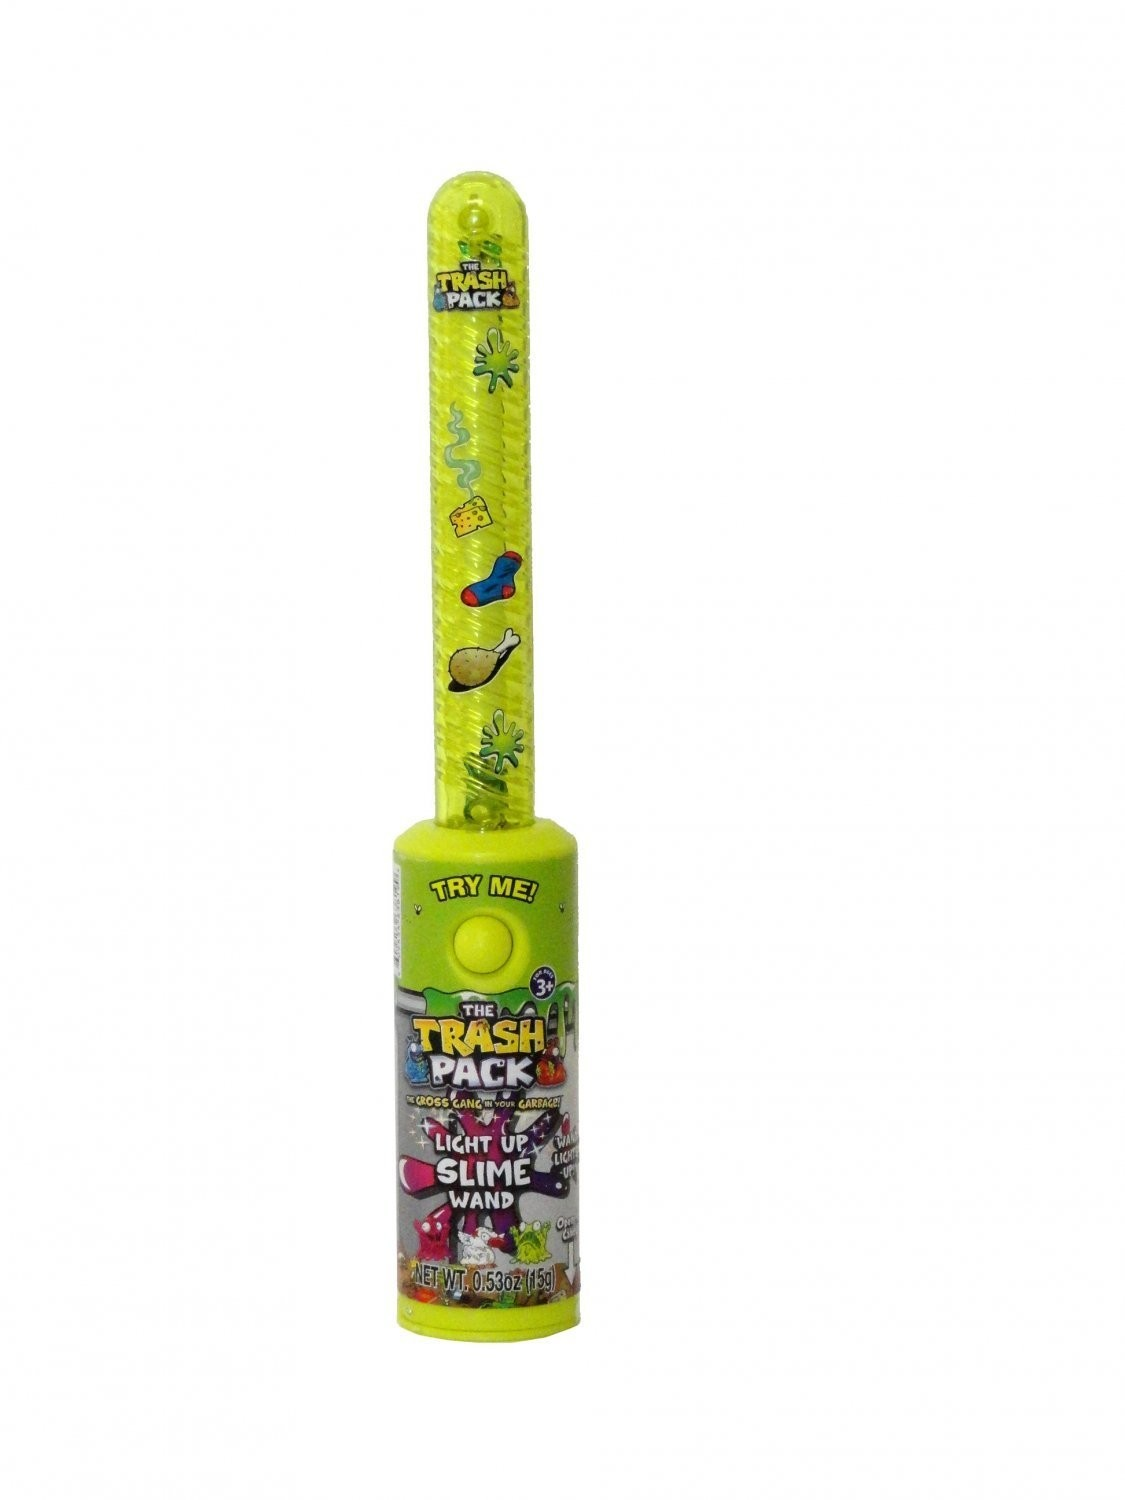 Trash Pack Trash Pack™ Light Up Slime Wand